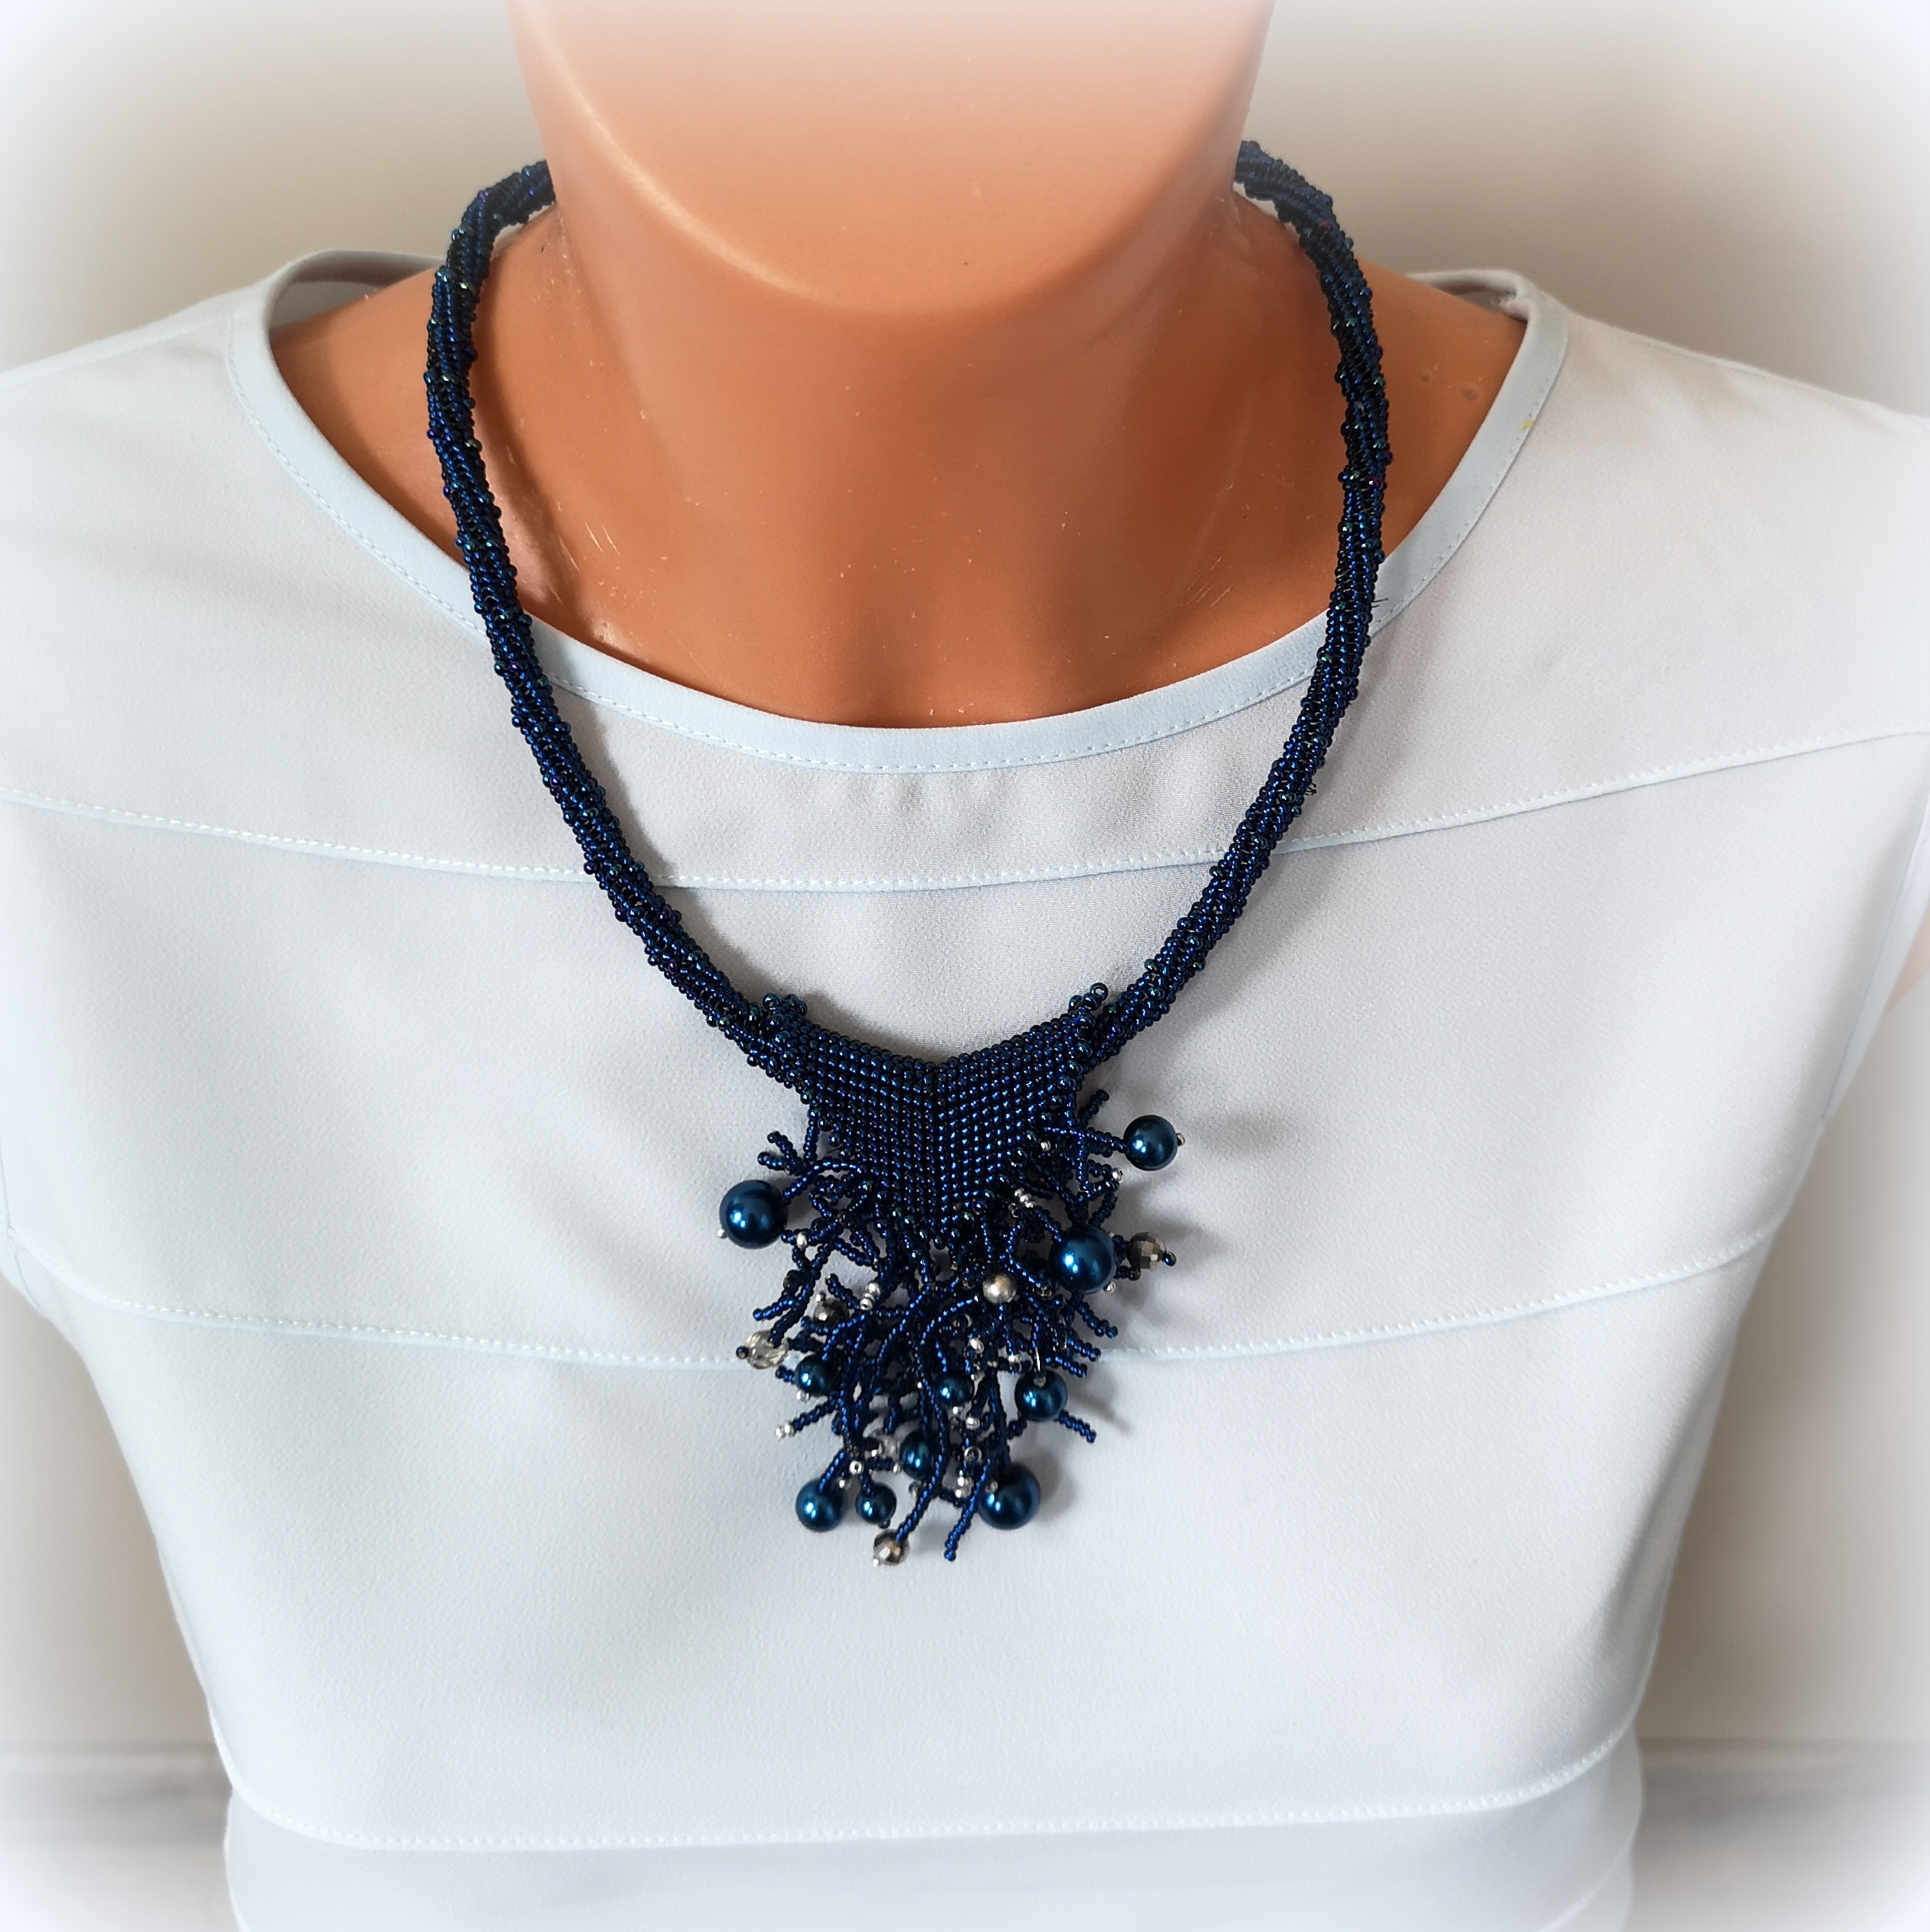 seed beads necklace (7)